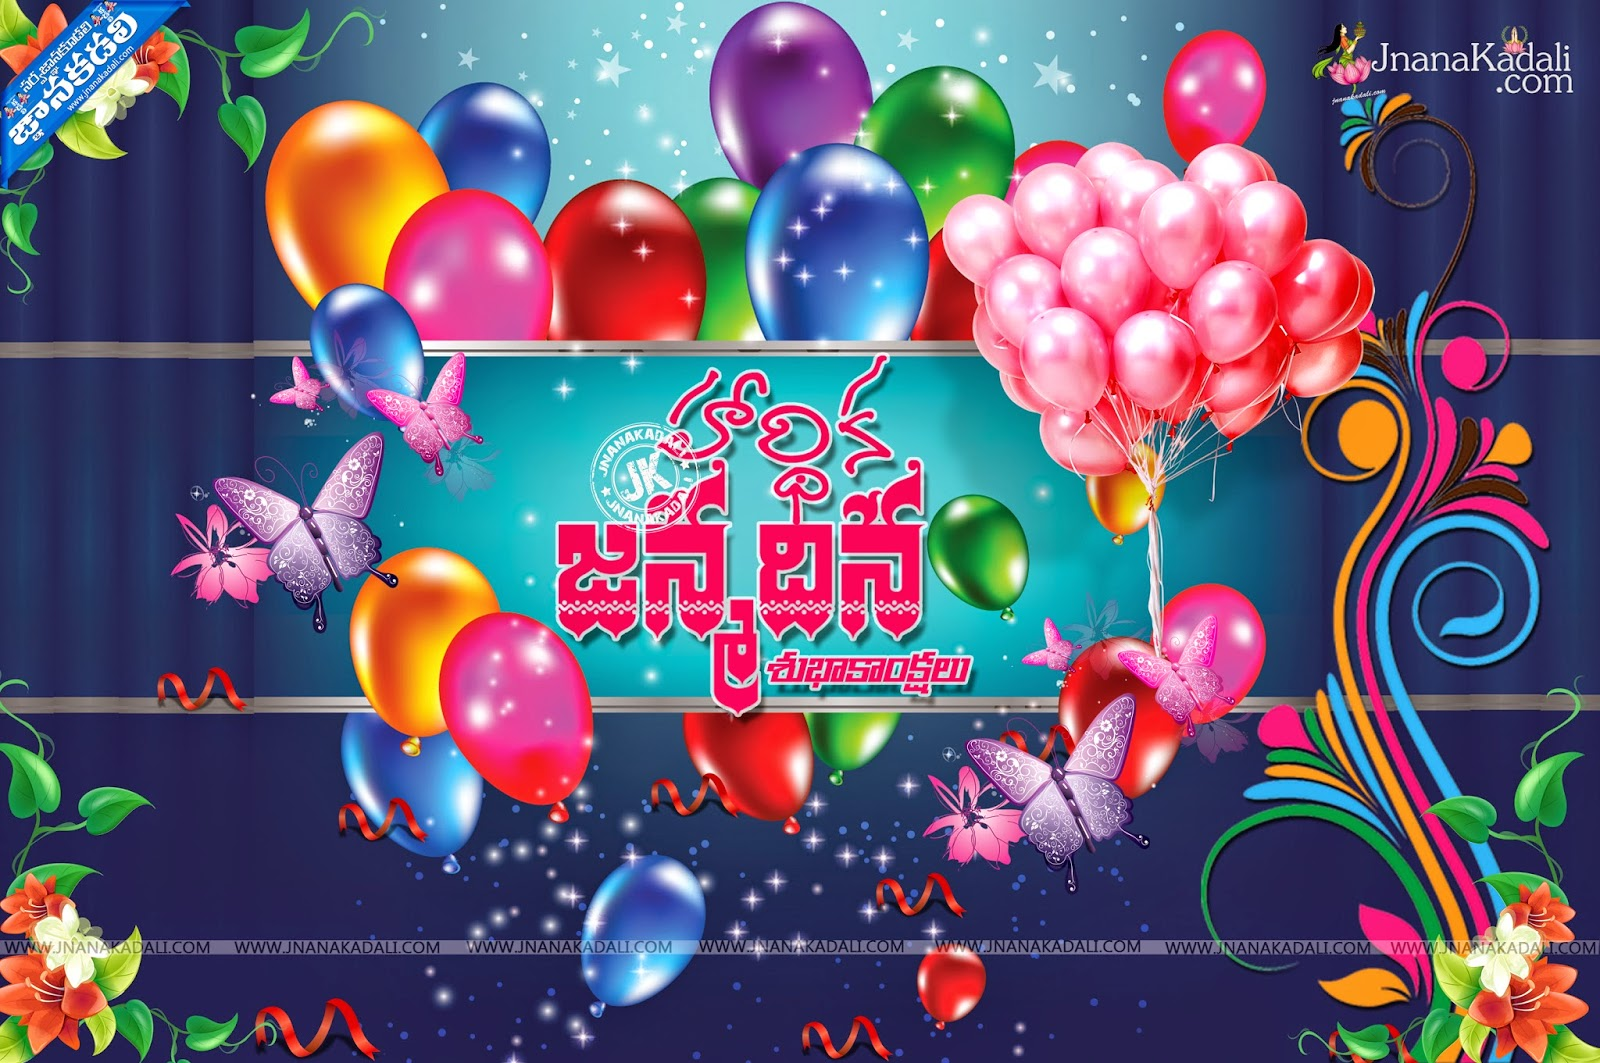 Birthday day cards gangcraft telugu best birthday quotes and wishes greetings cards jnana birthday card kristyandbryce Images